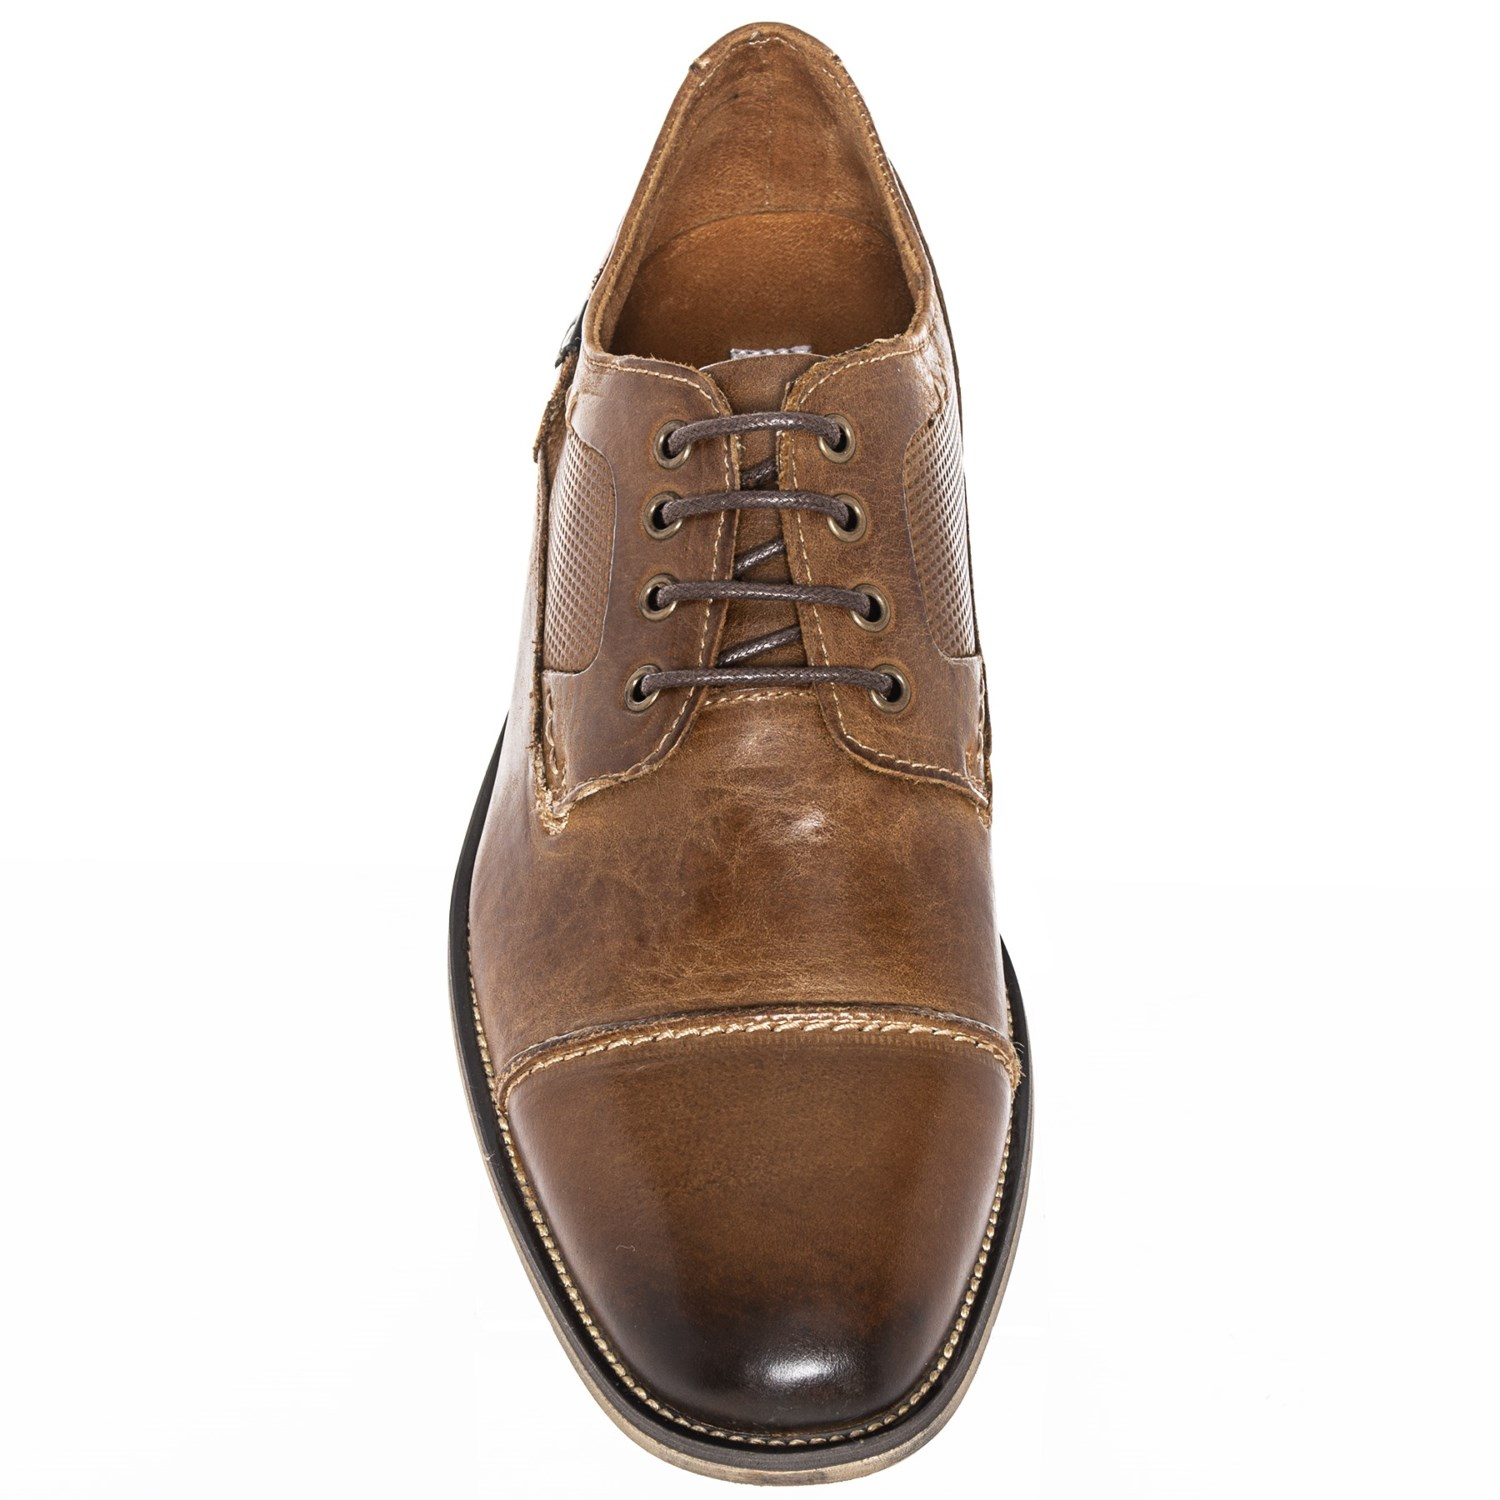 193a5b559fb Steve Madden Jagwar Oxford Shoes (For Men) - Save 33%